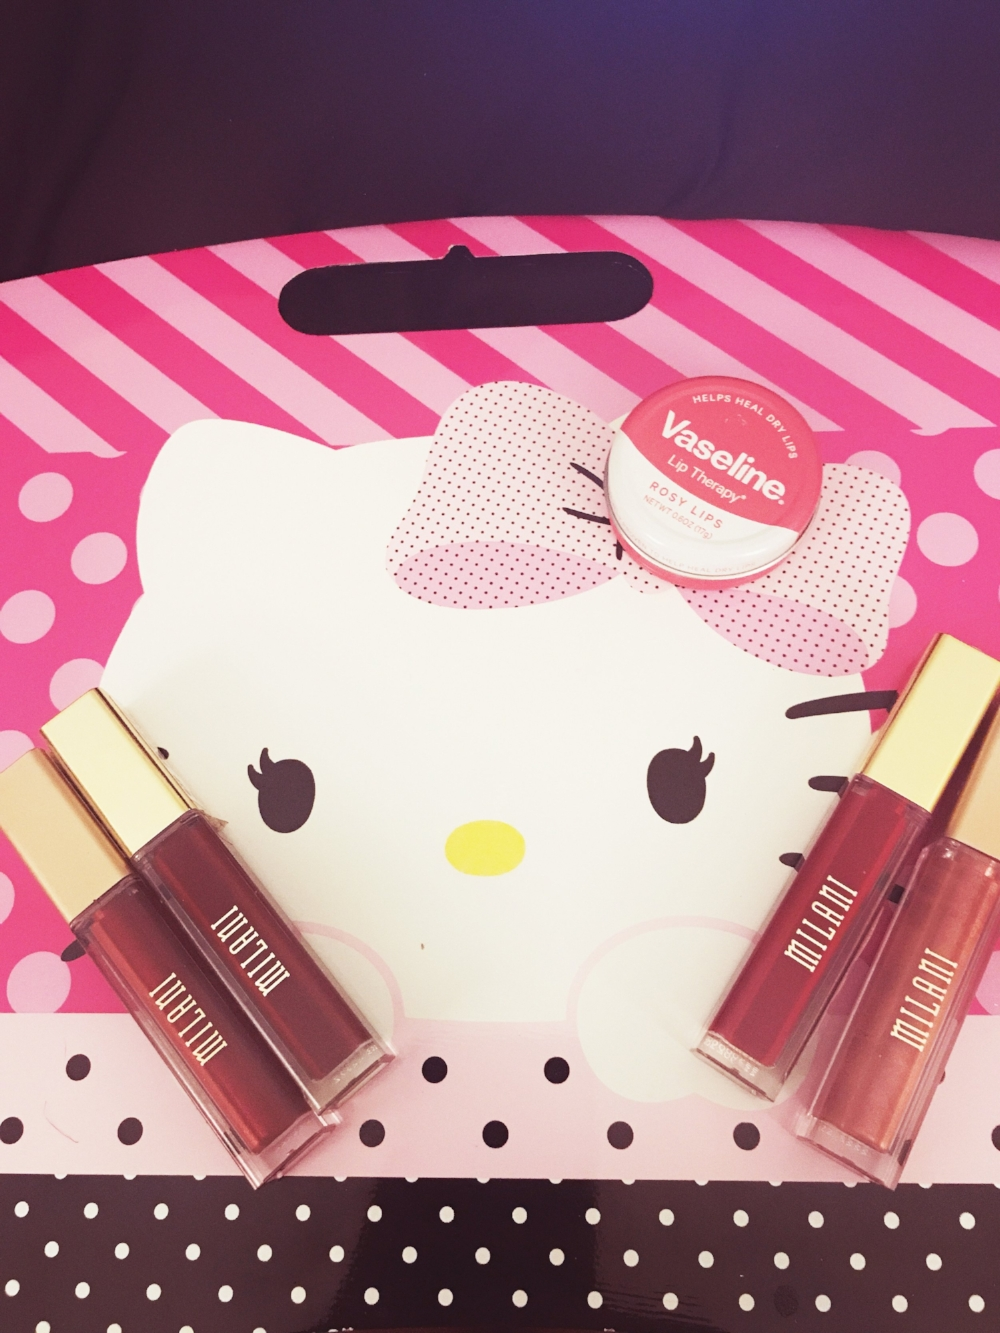 """Featuring Milani """"Amore Matte Lip Creme"""", shades: """"Fabulous"""", """"Overdramatic"""", """"Pretty Promblematic"""", and """"Devotion"""""""